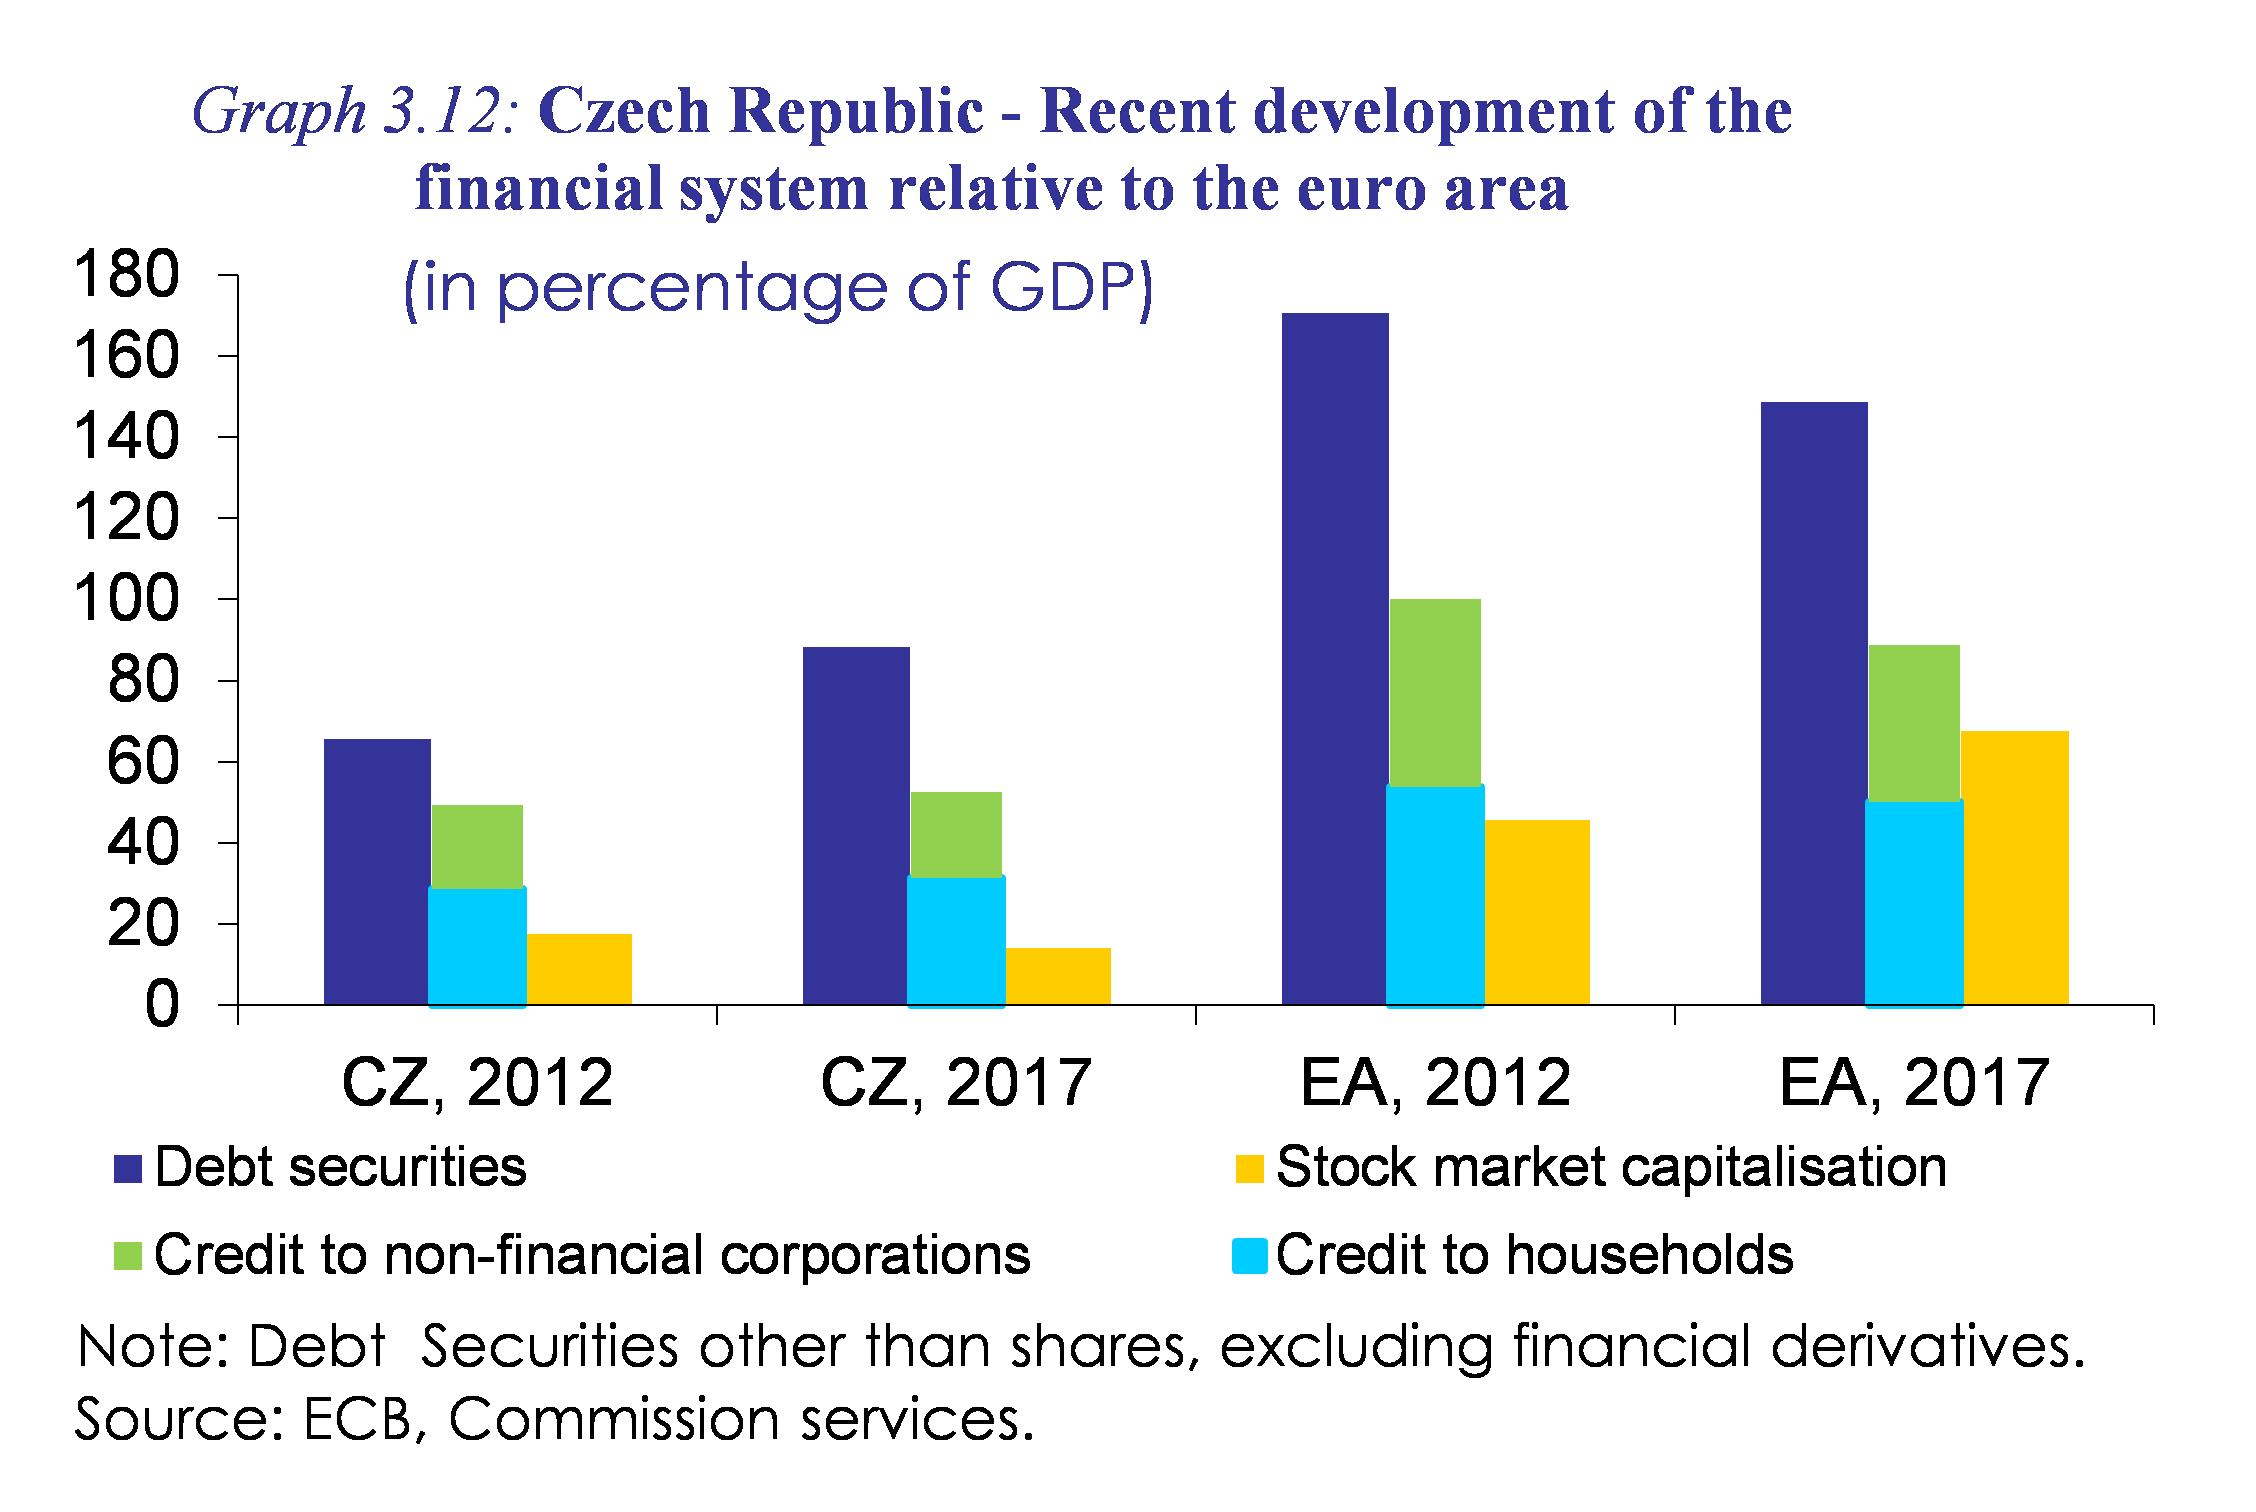 Eur Lex 52018sc0350 En 10 Digit 137 Sector Debt In The Czech Republic Floated Around 70 Of Its Gdp Between 2010 And 2016 Remaining Significantly Below Euro Area Average